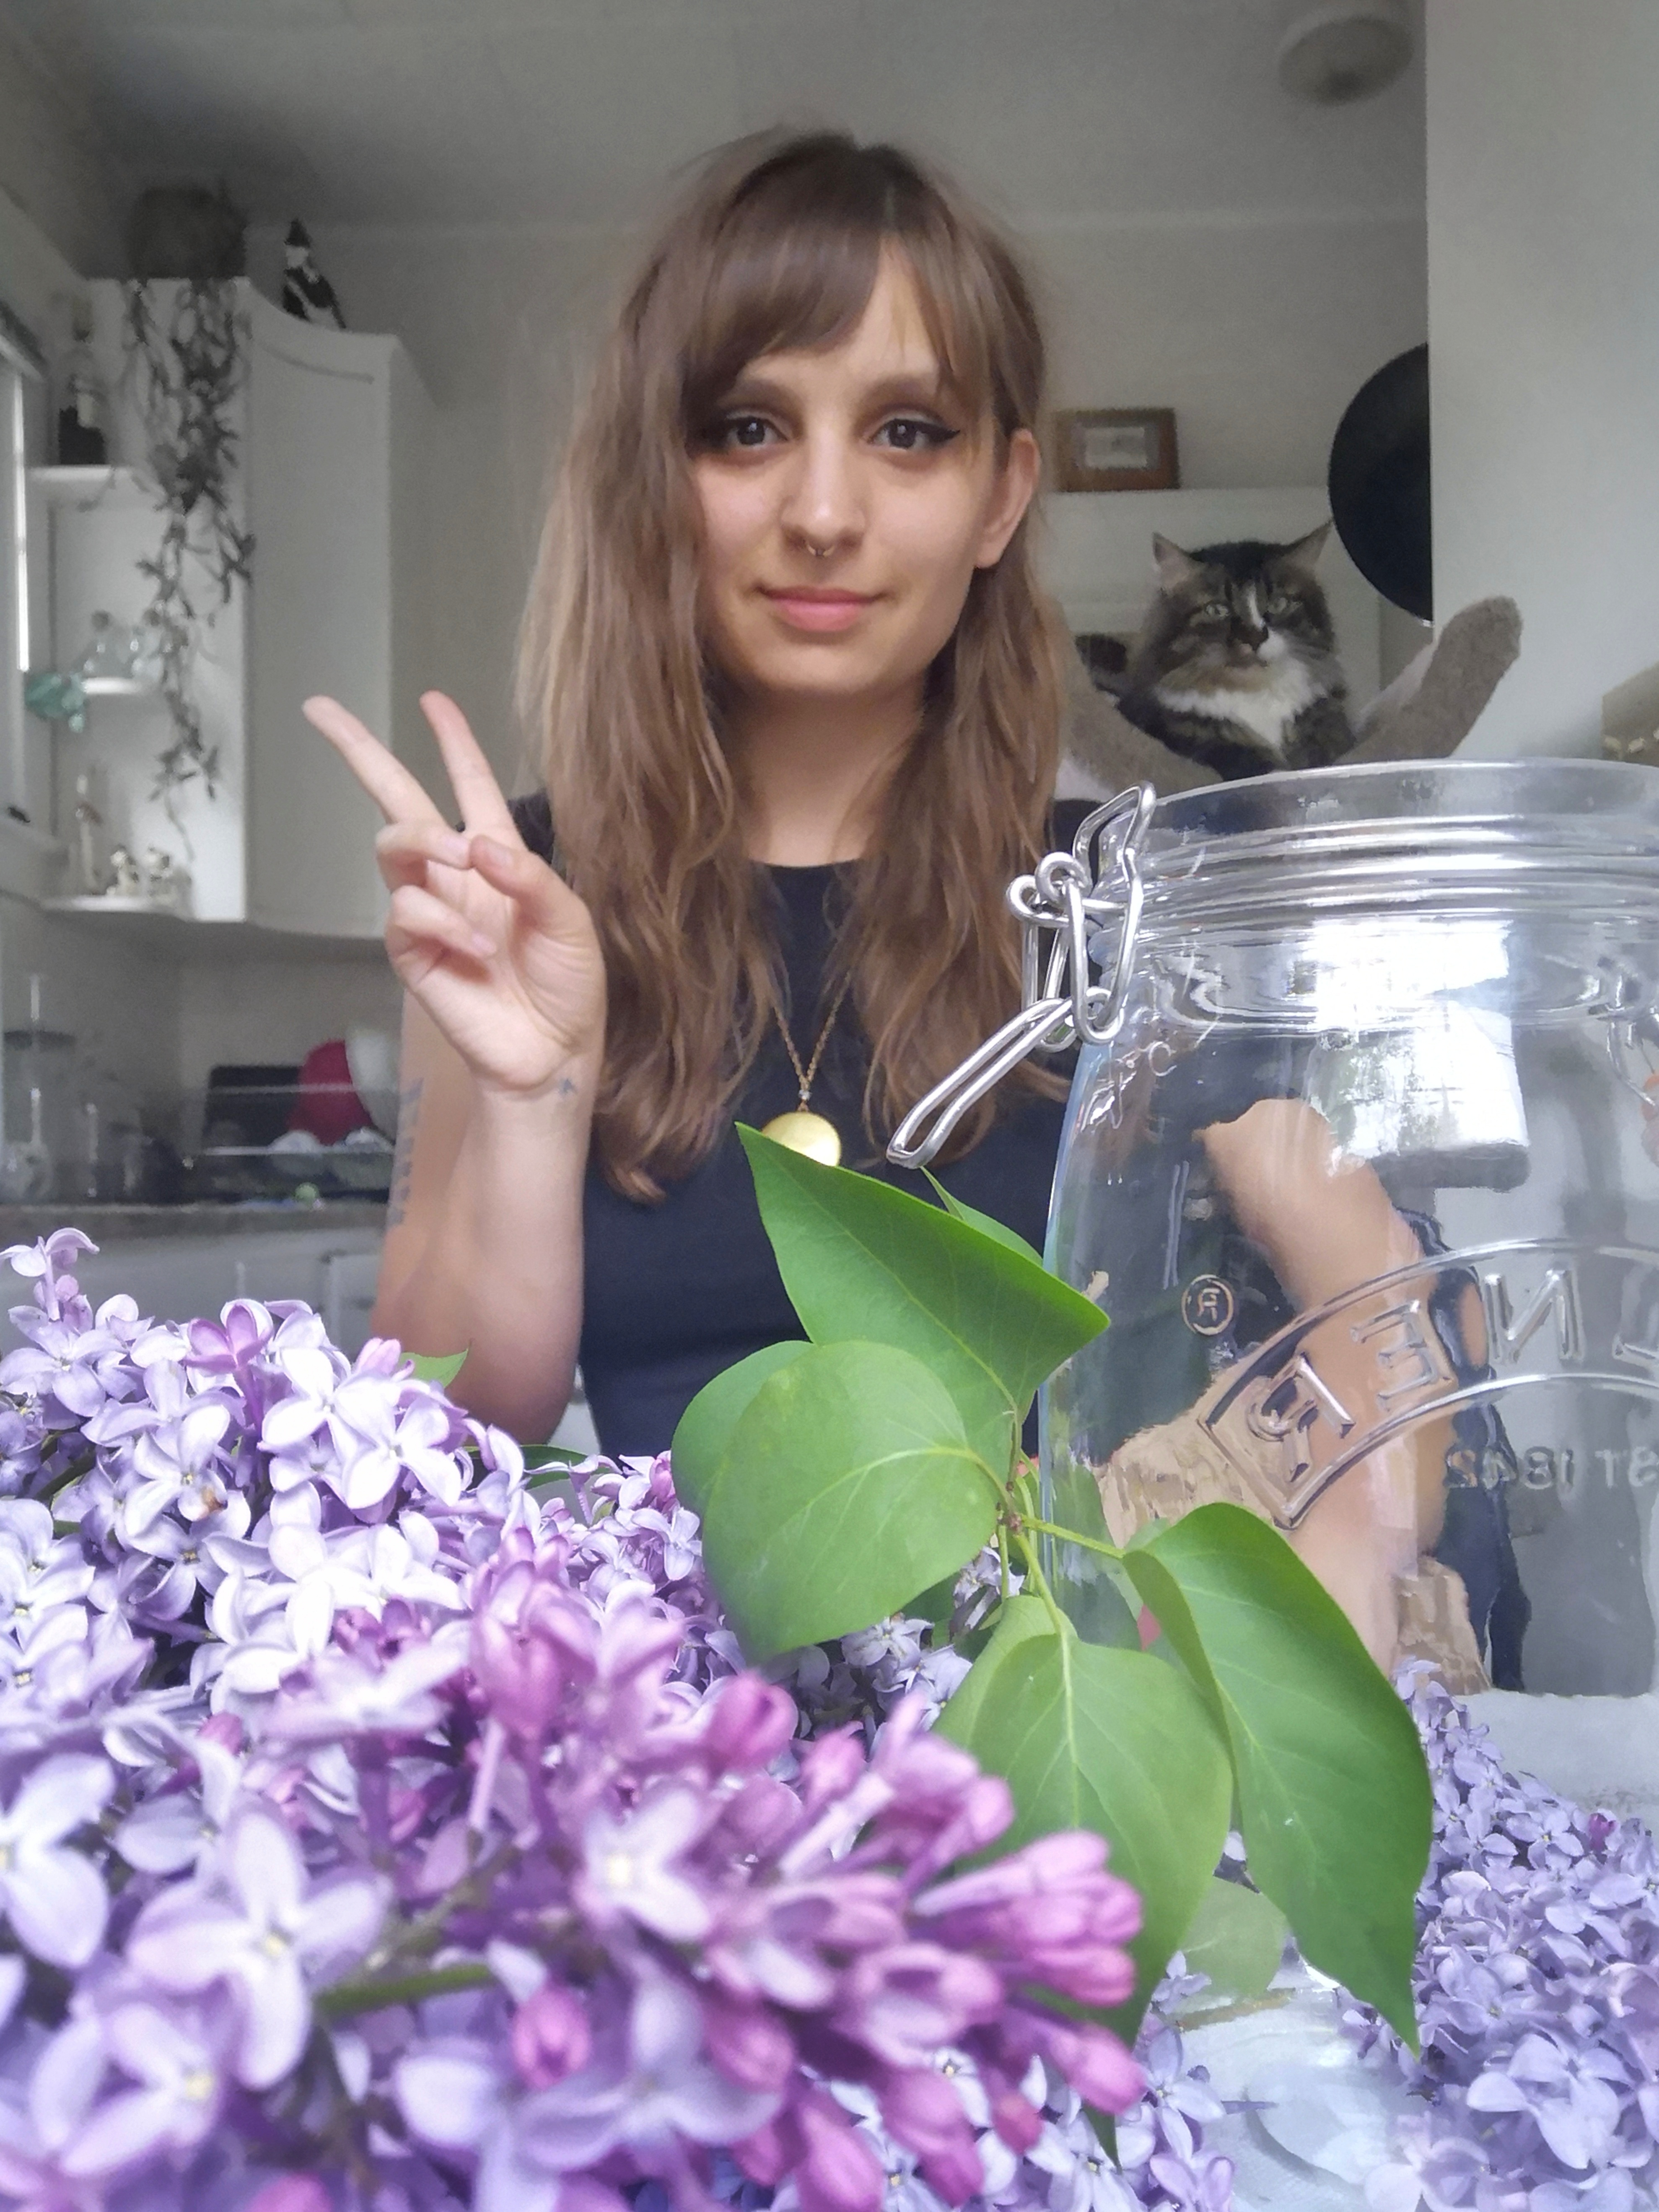 A person is posed behind a bunch of lilacs and a jar.